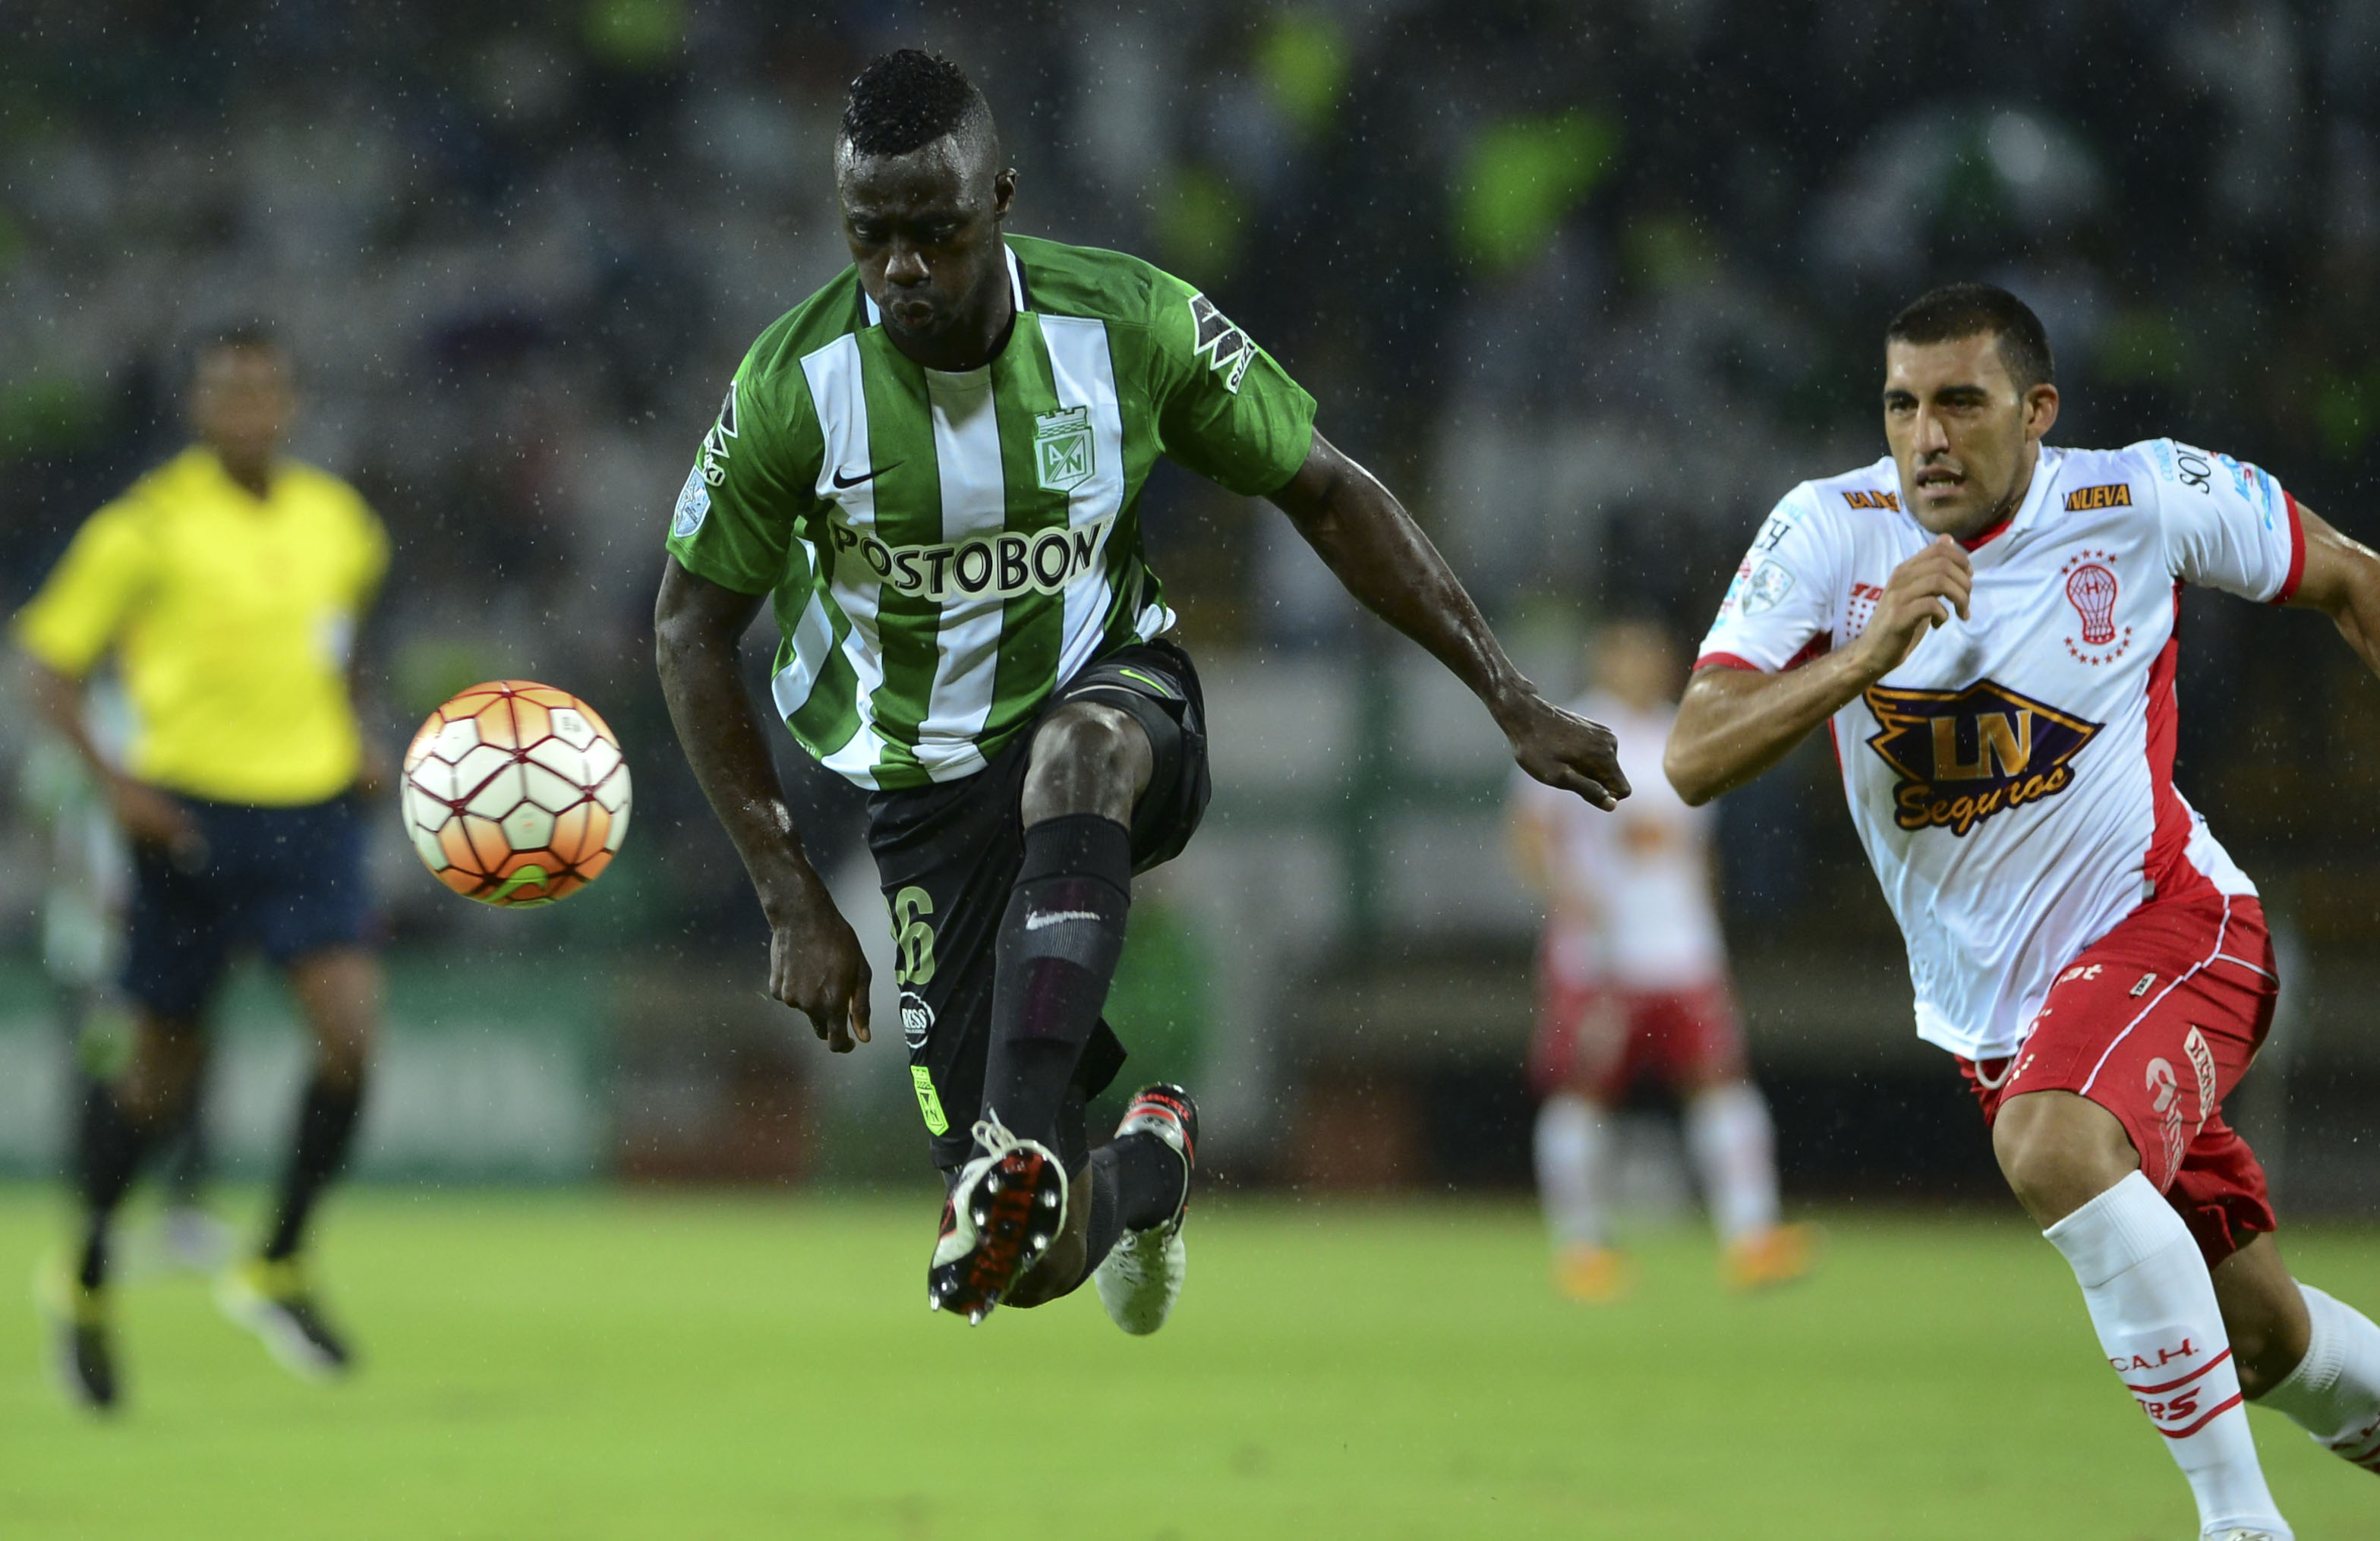 Davinson Sanchez in action for Atletico Nacional at the 2016 Copa Libertadores. / AFP / RAUL ARBOLEDA